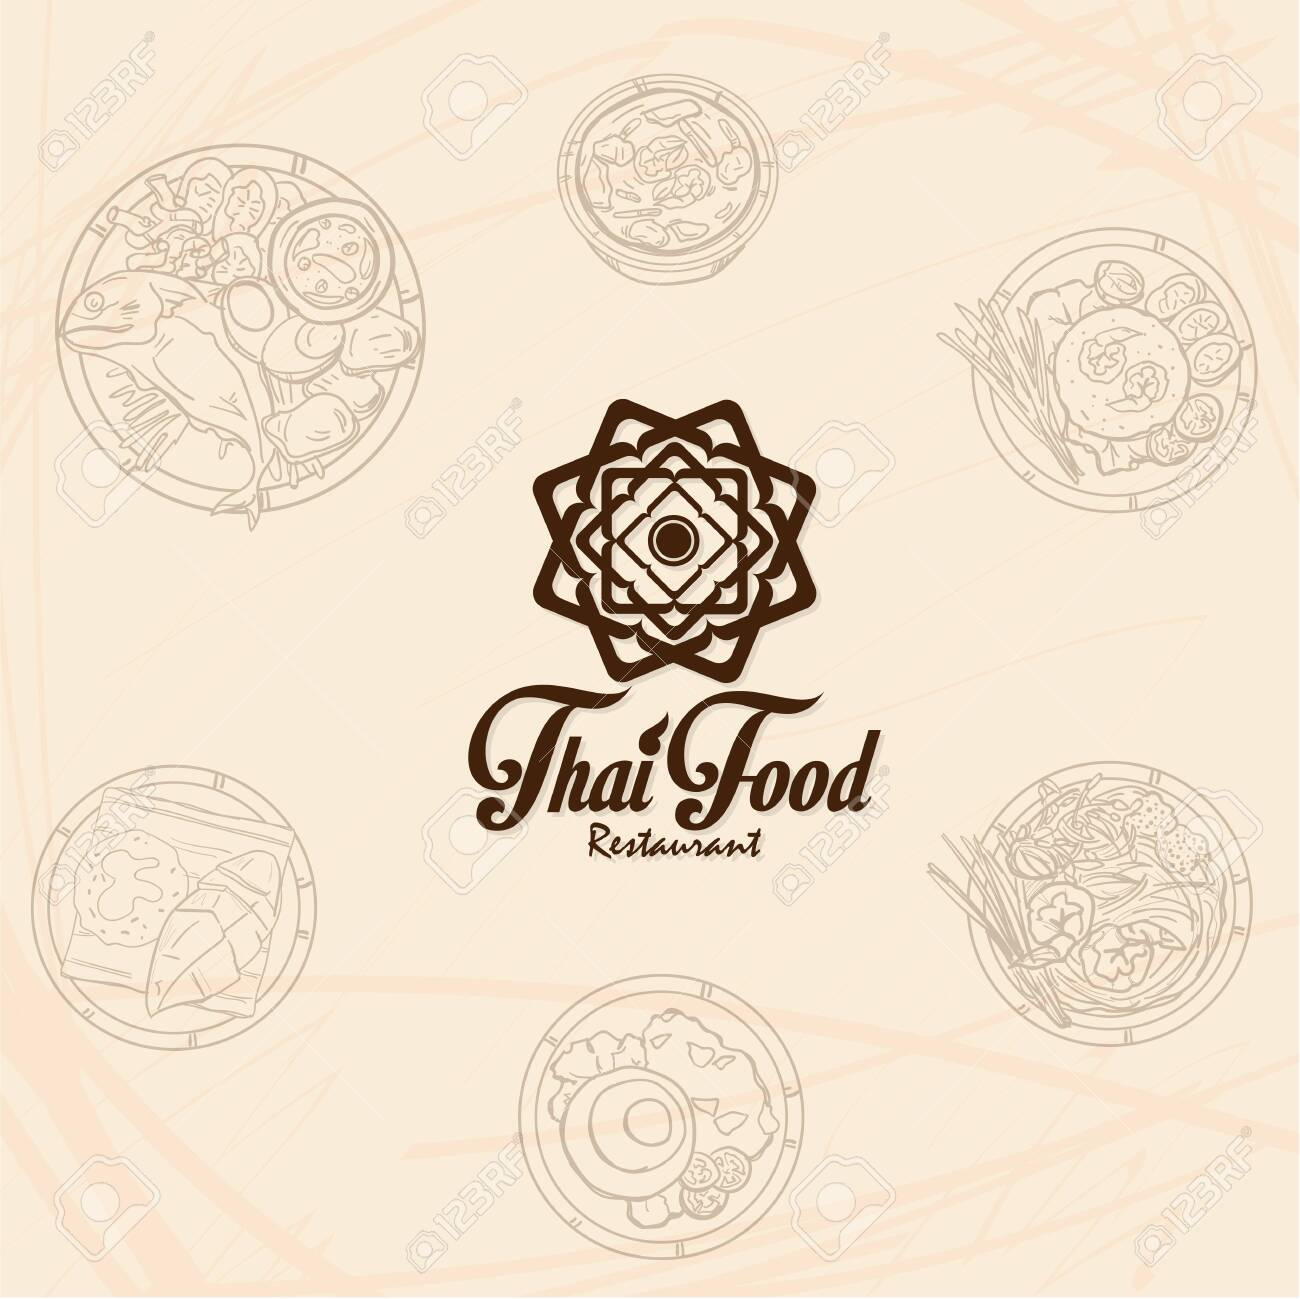 Thai Food Restaurant Logo Icon Graphic Royalty Free Cliparts Vectors And Stock Illustration Image 134585159